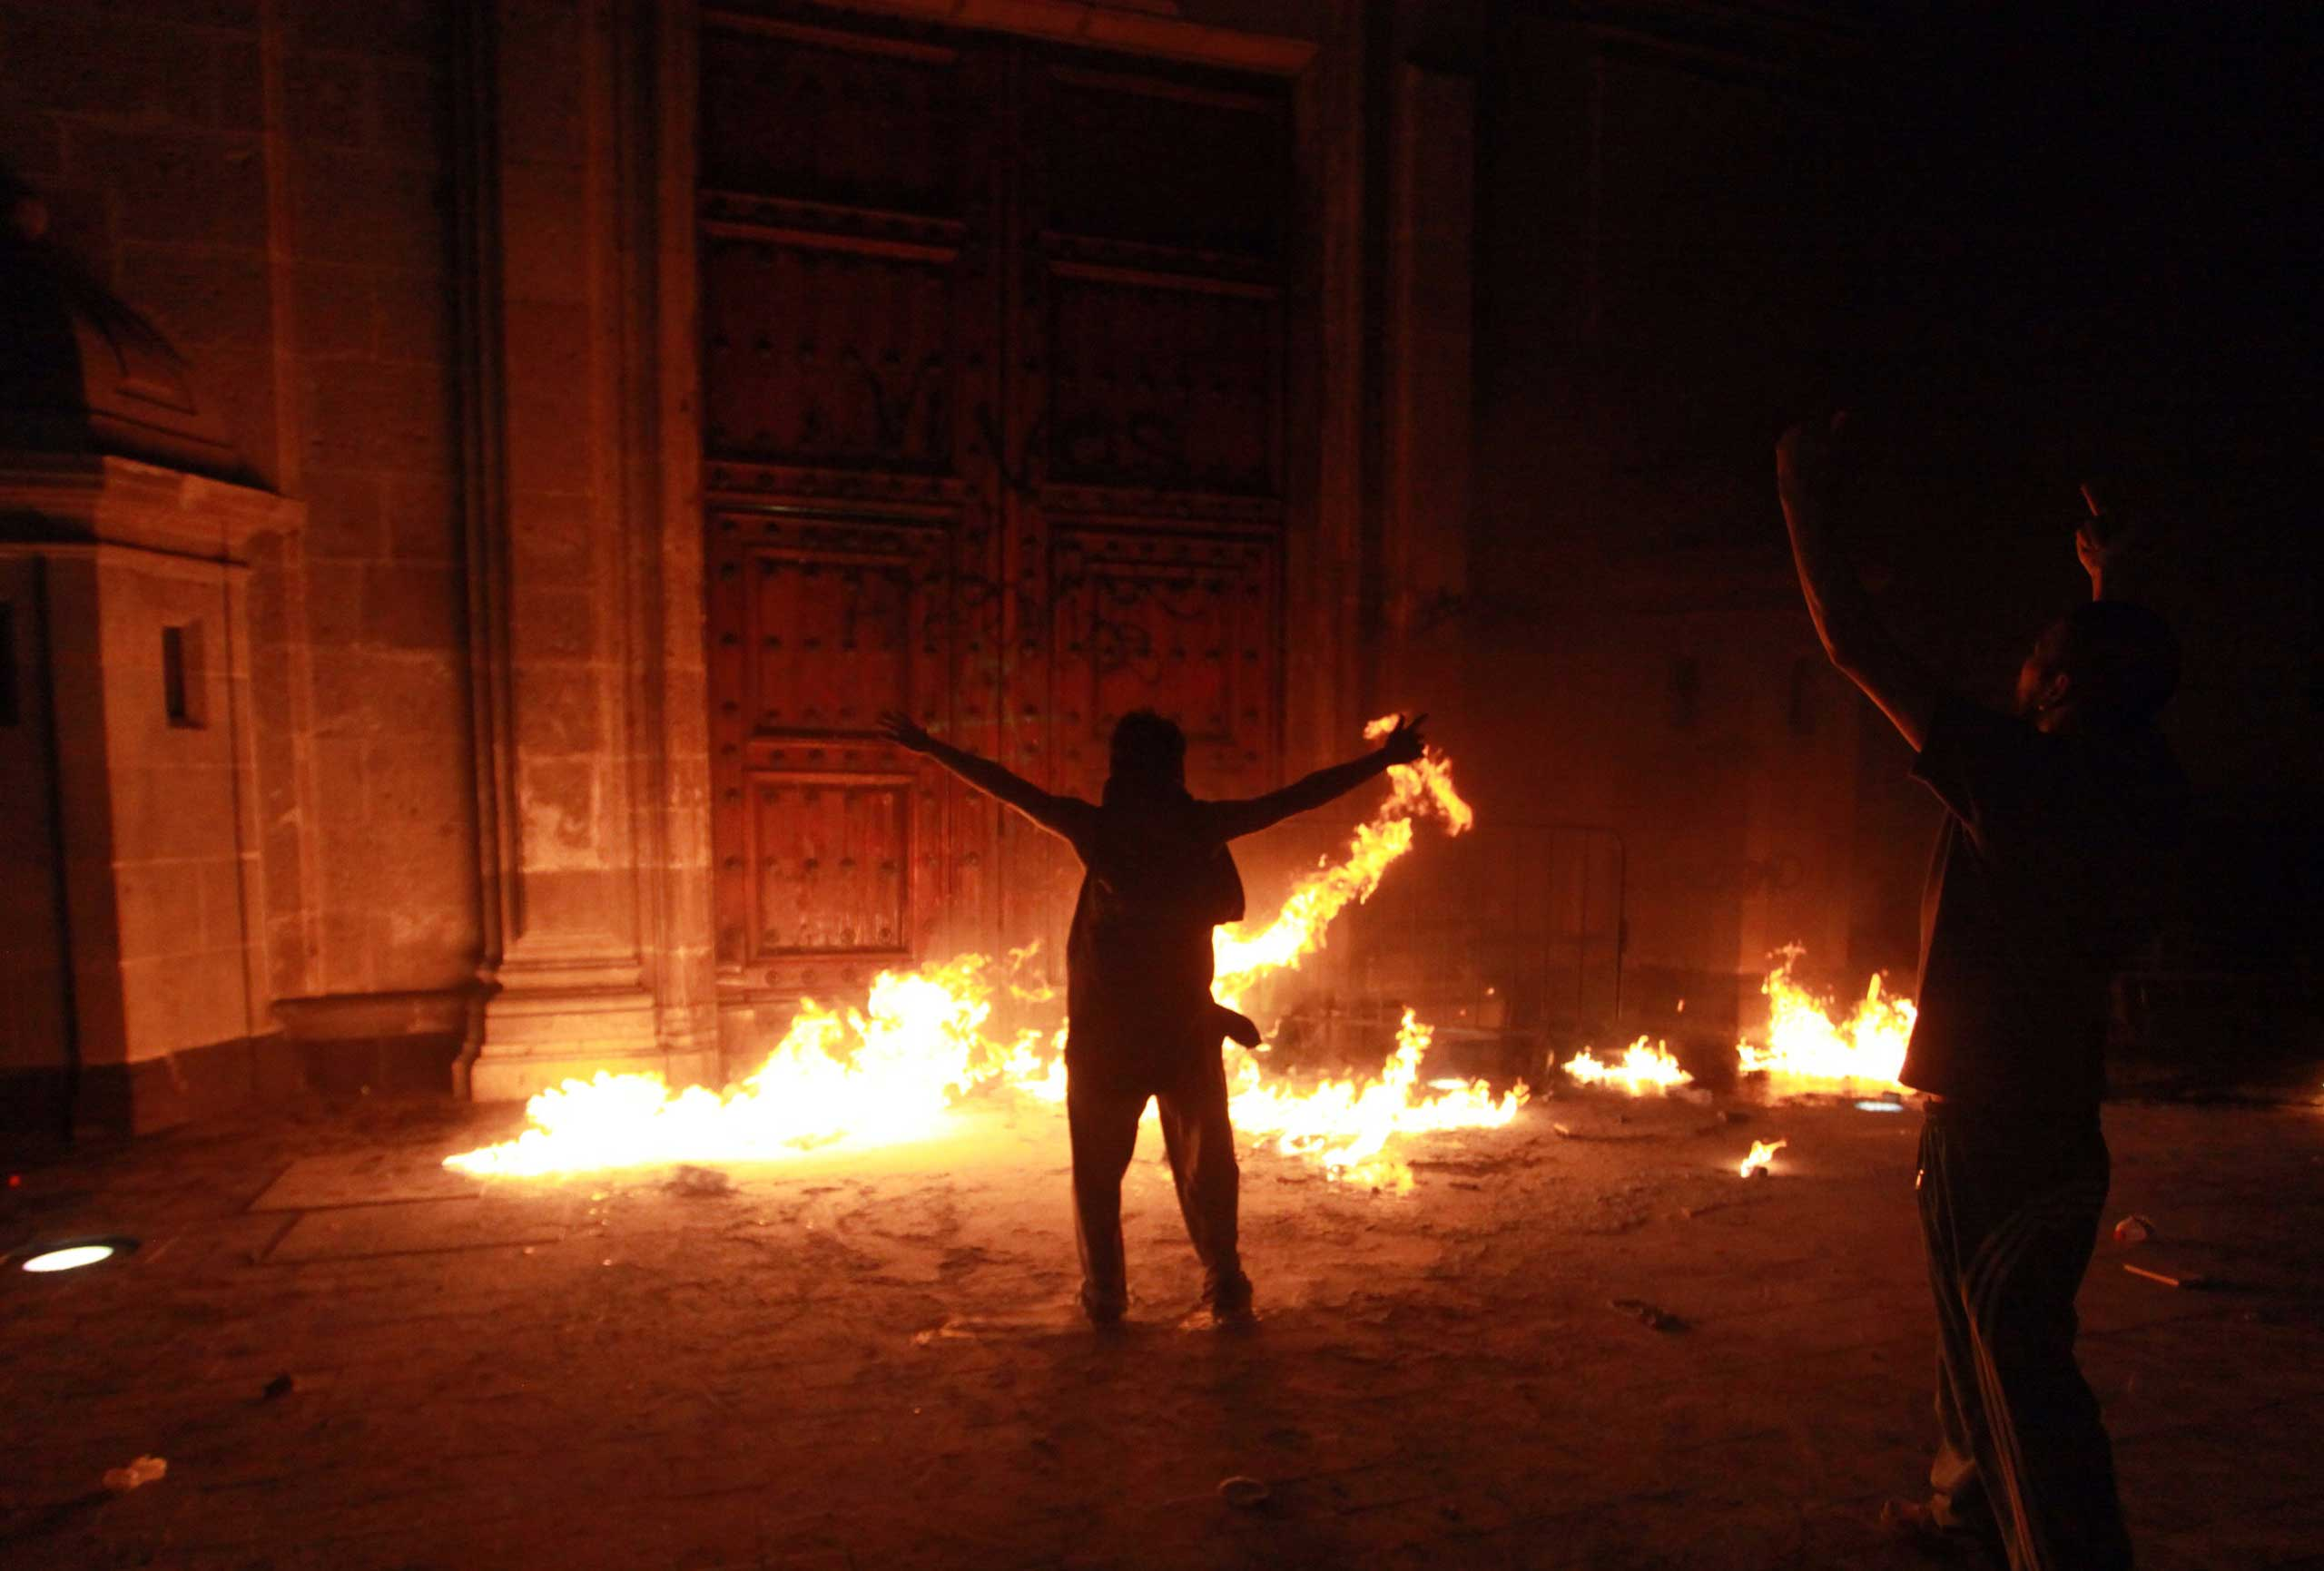 Mexico: Protests over the disappearance of 43 studentsDemonstrators set on fire a door of the National Palace in Mexico City, Nov. 8, 2014.